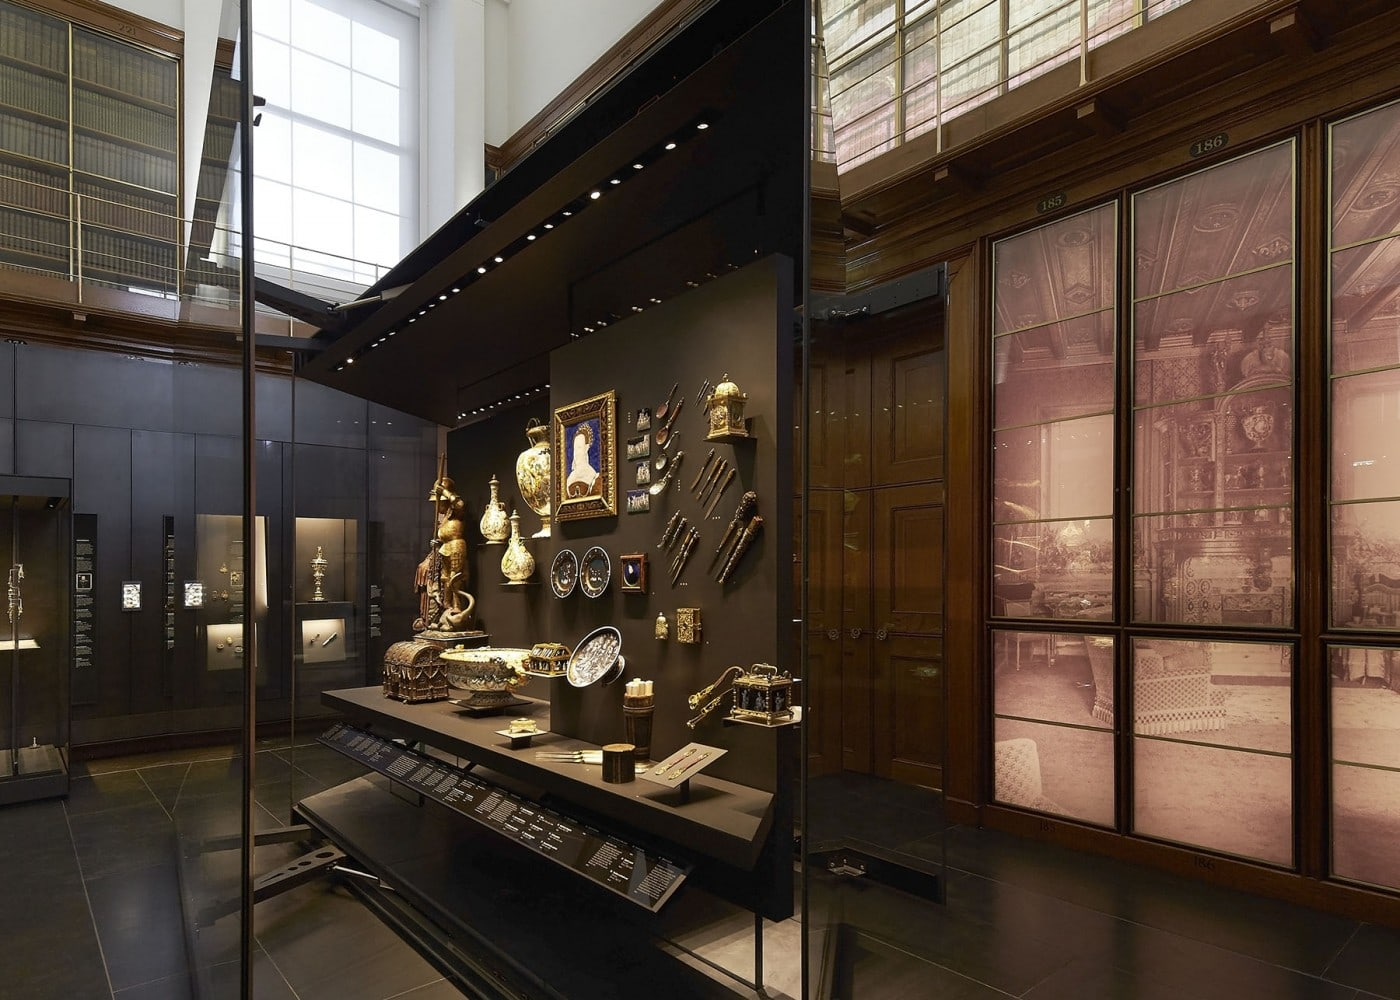 museum lighting design: displays